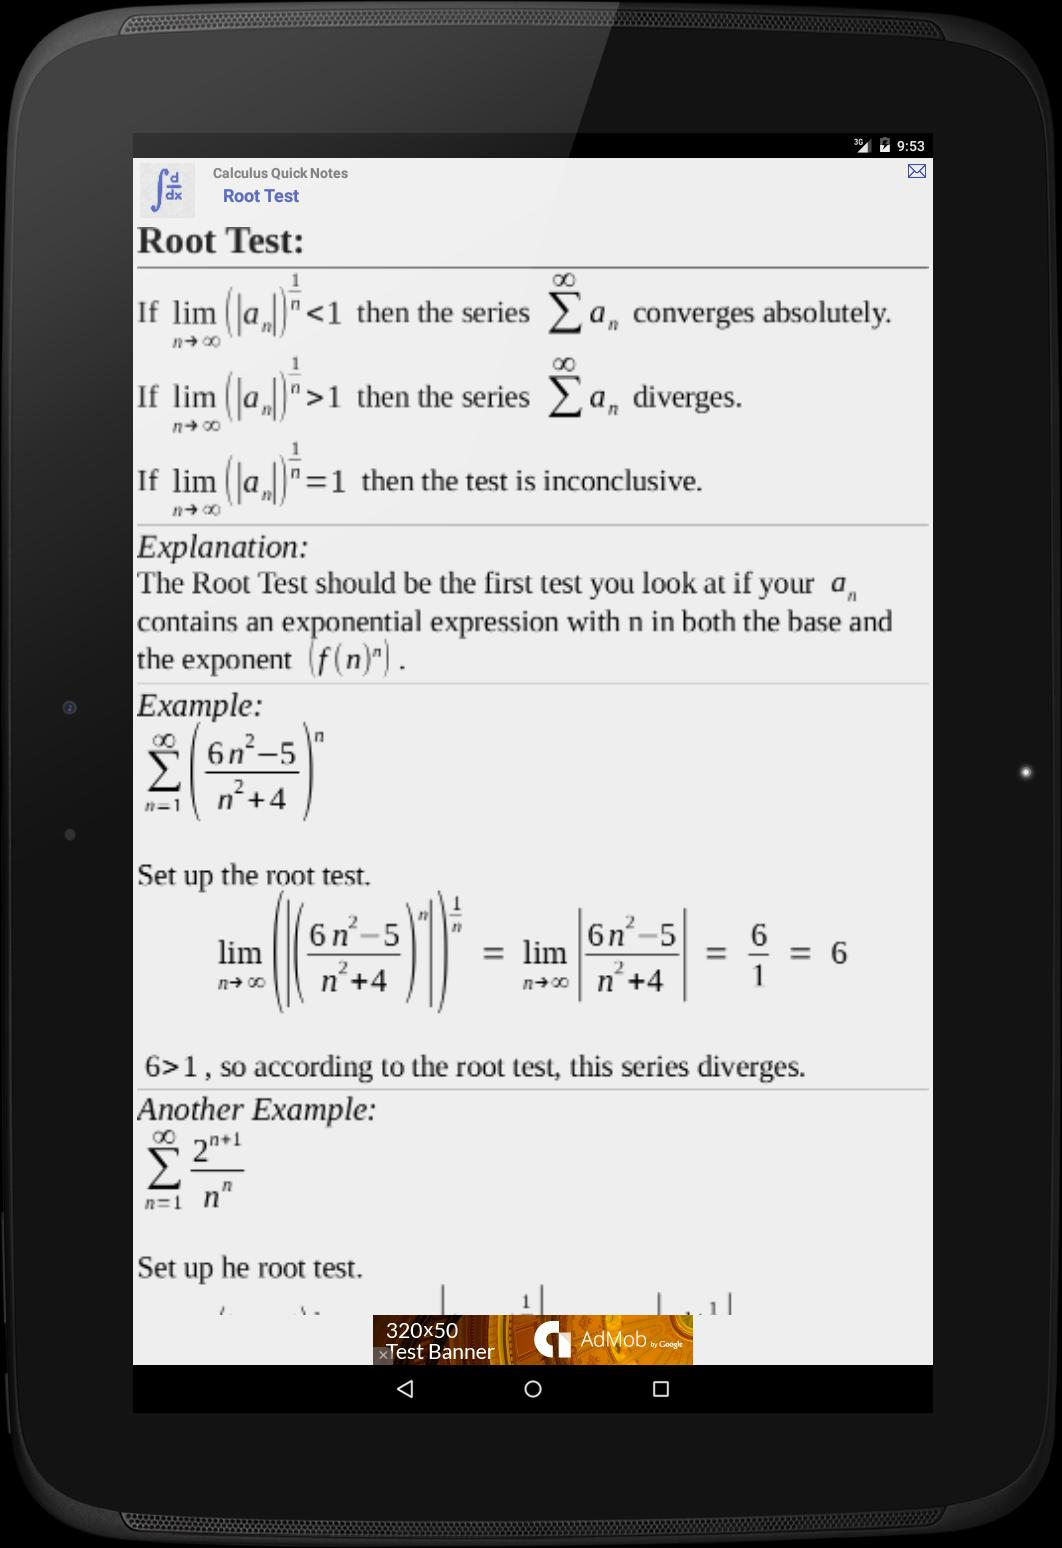 Calculus Quick Notes for Android - APK Download